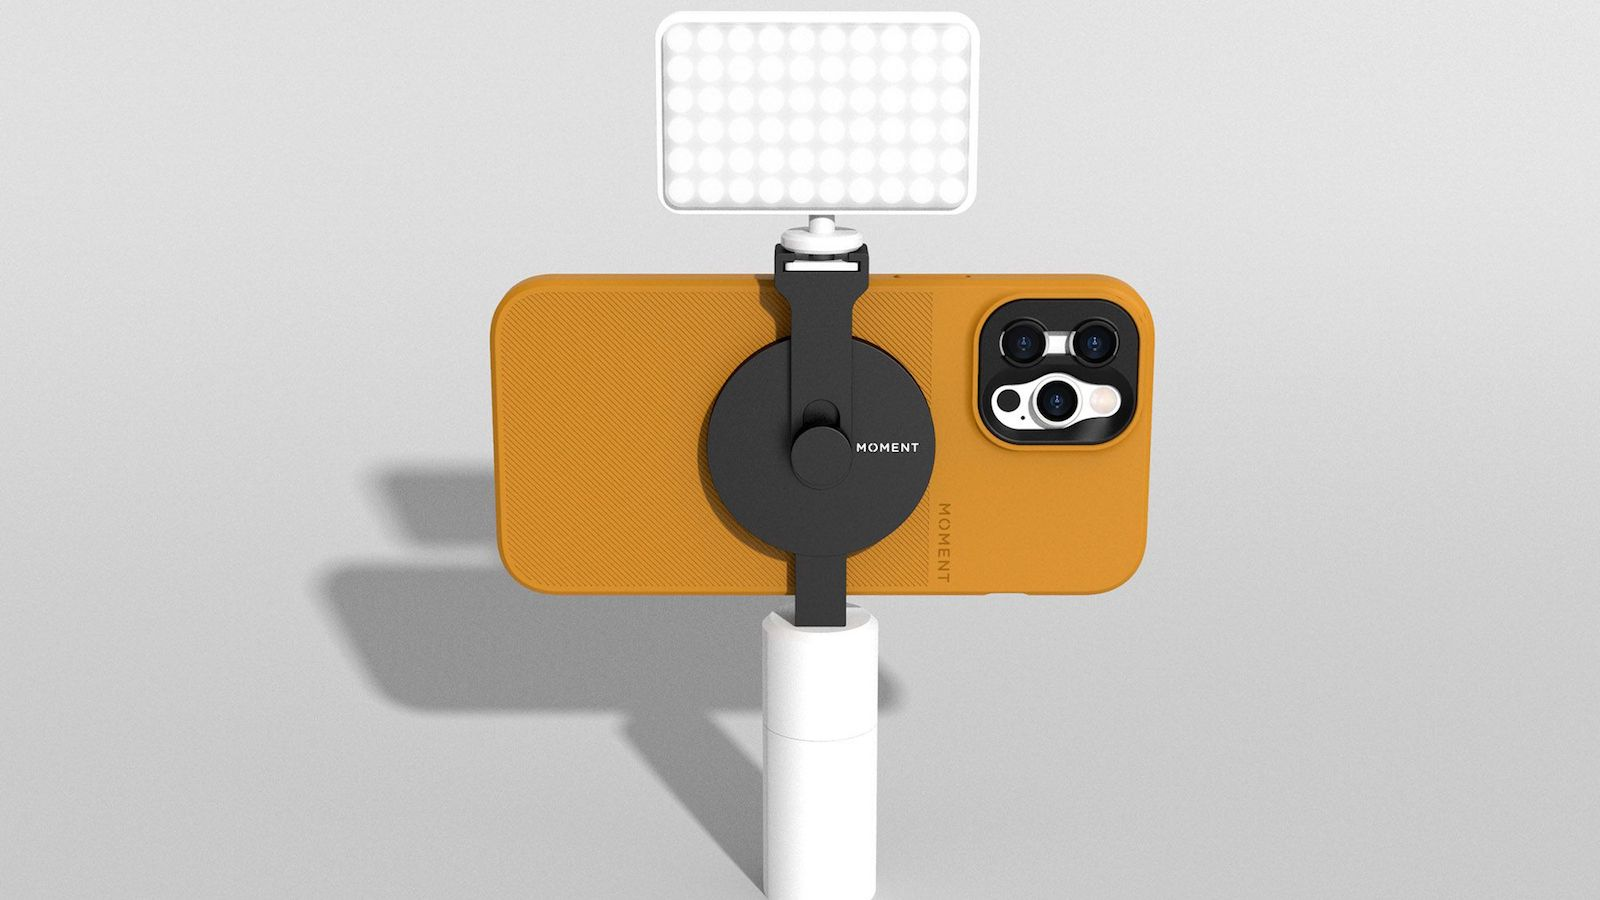 Moment iPhone 12 Mounts with MagSafe securely stabilize your phone everywhere